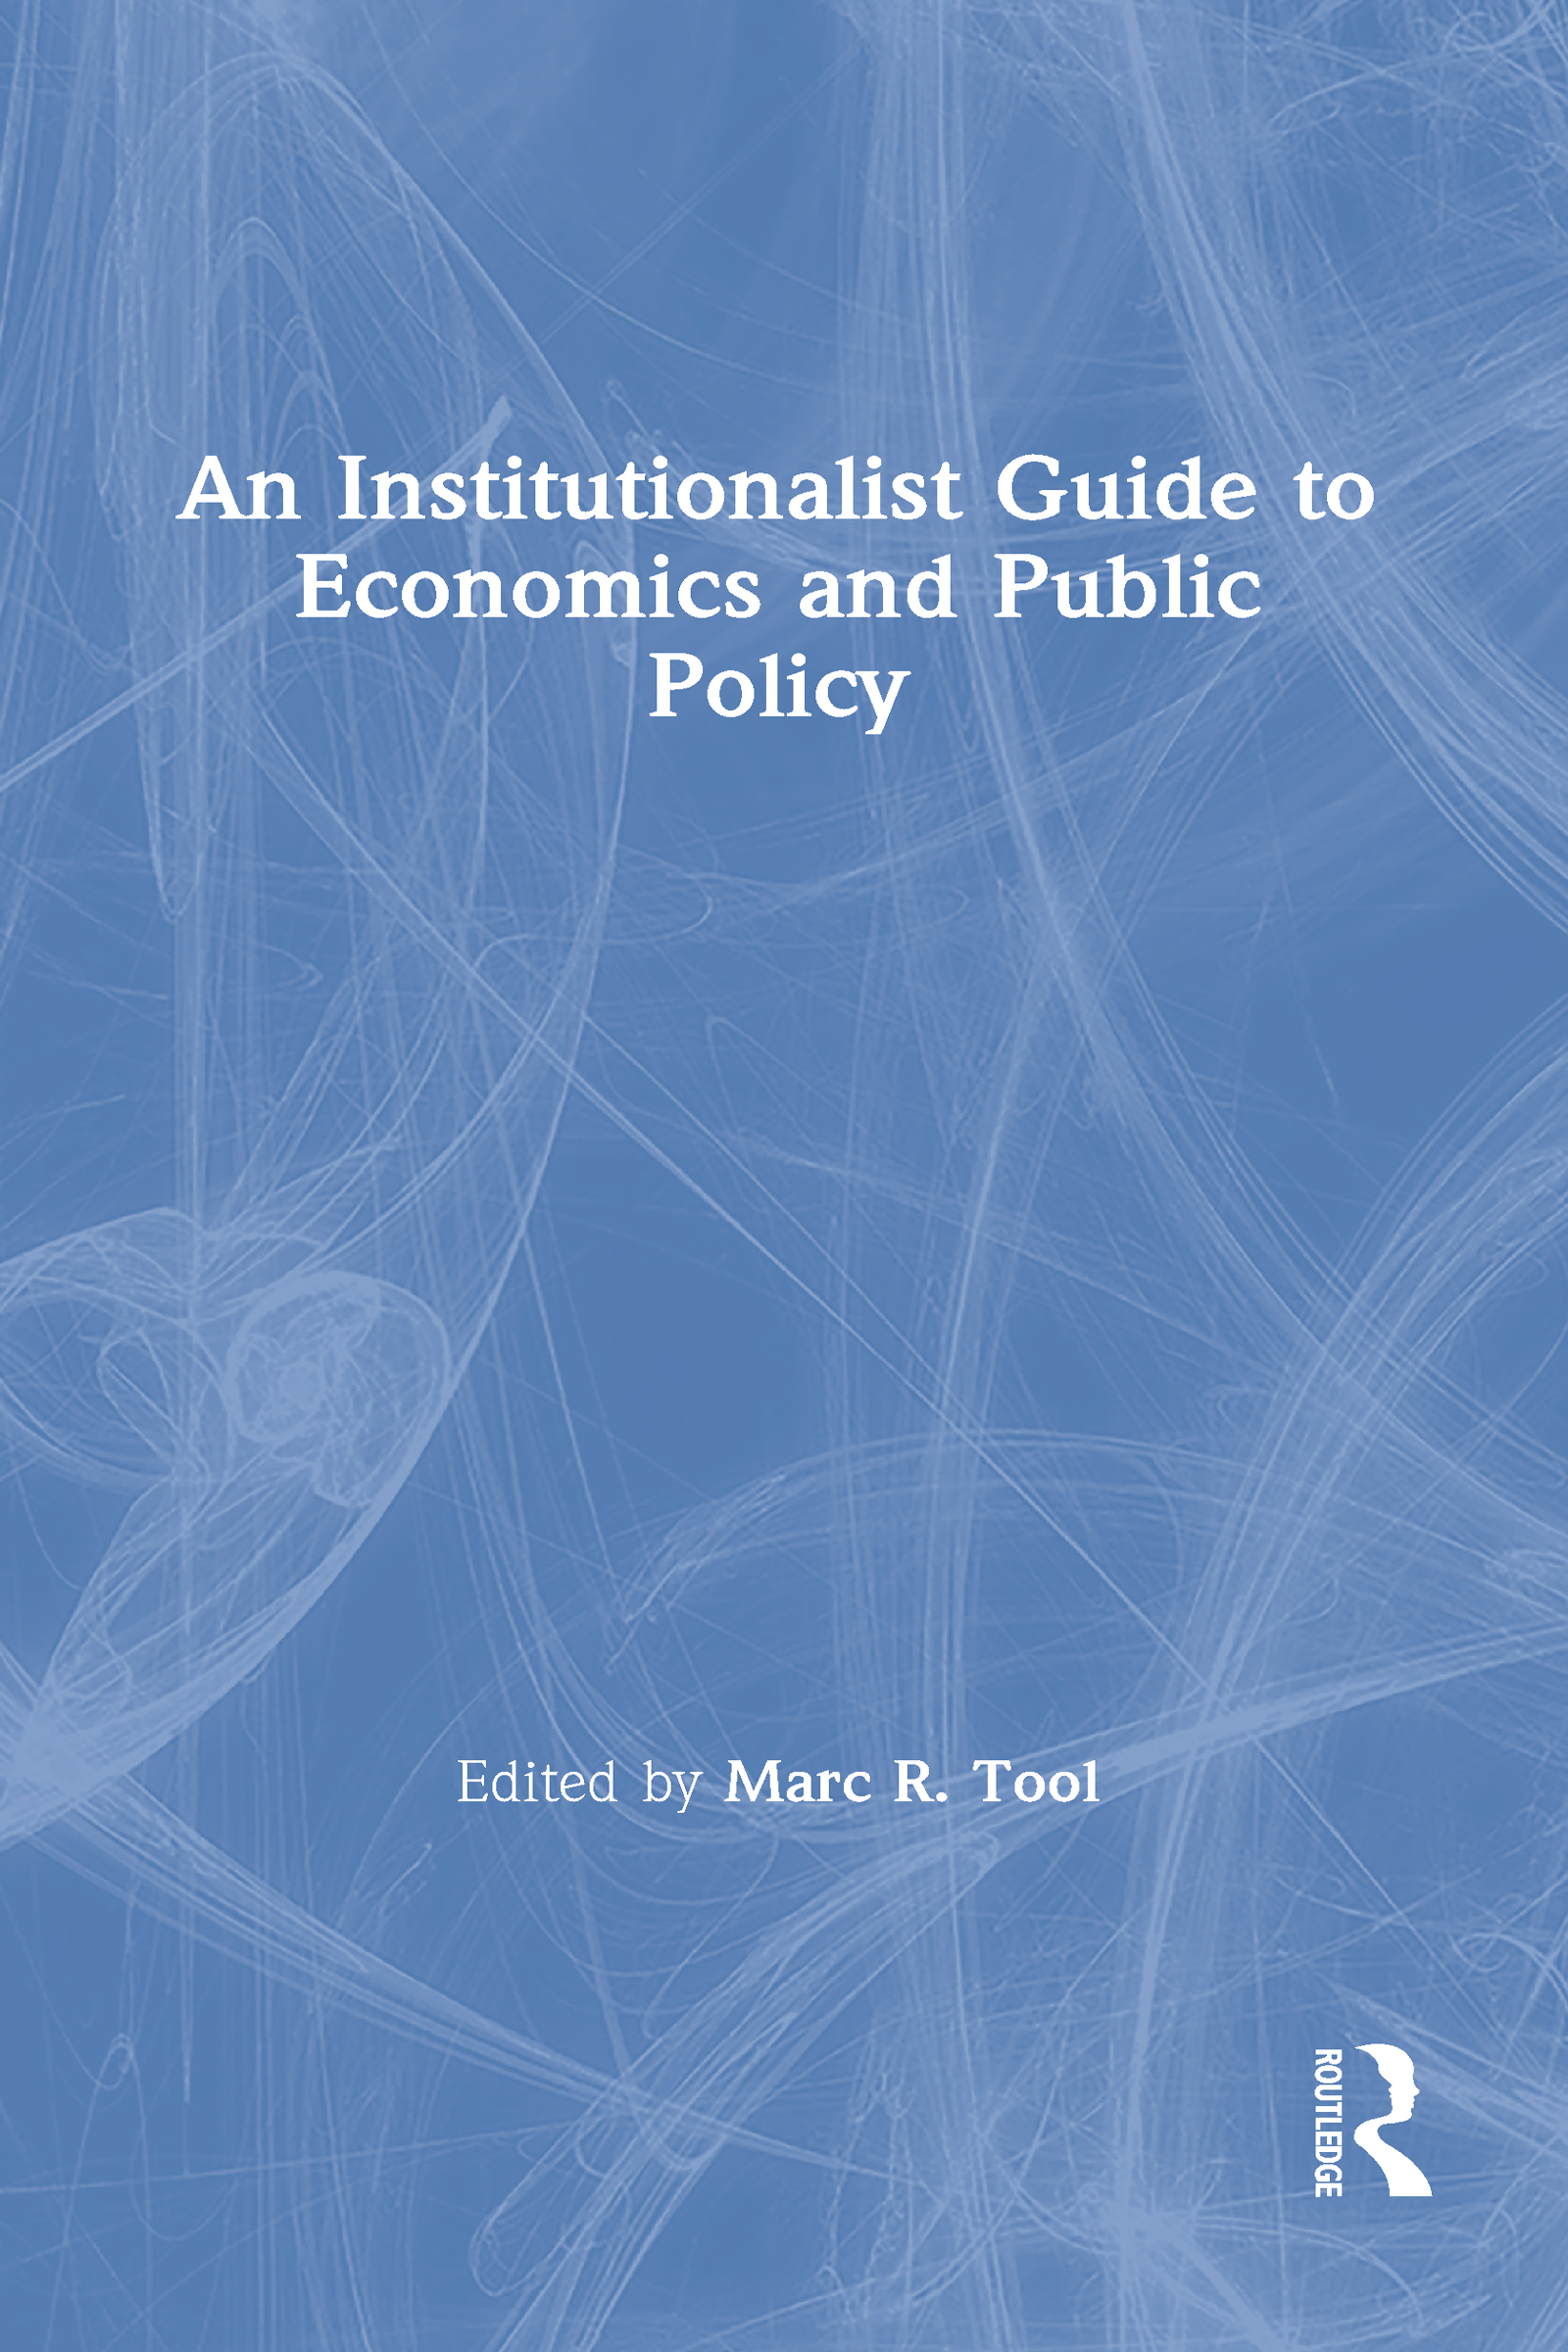 An Institutionalist Guide to Economics and Public Policy book cover